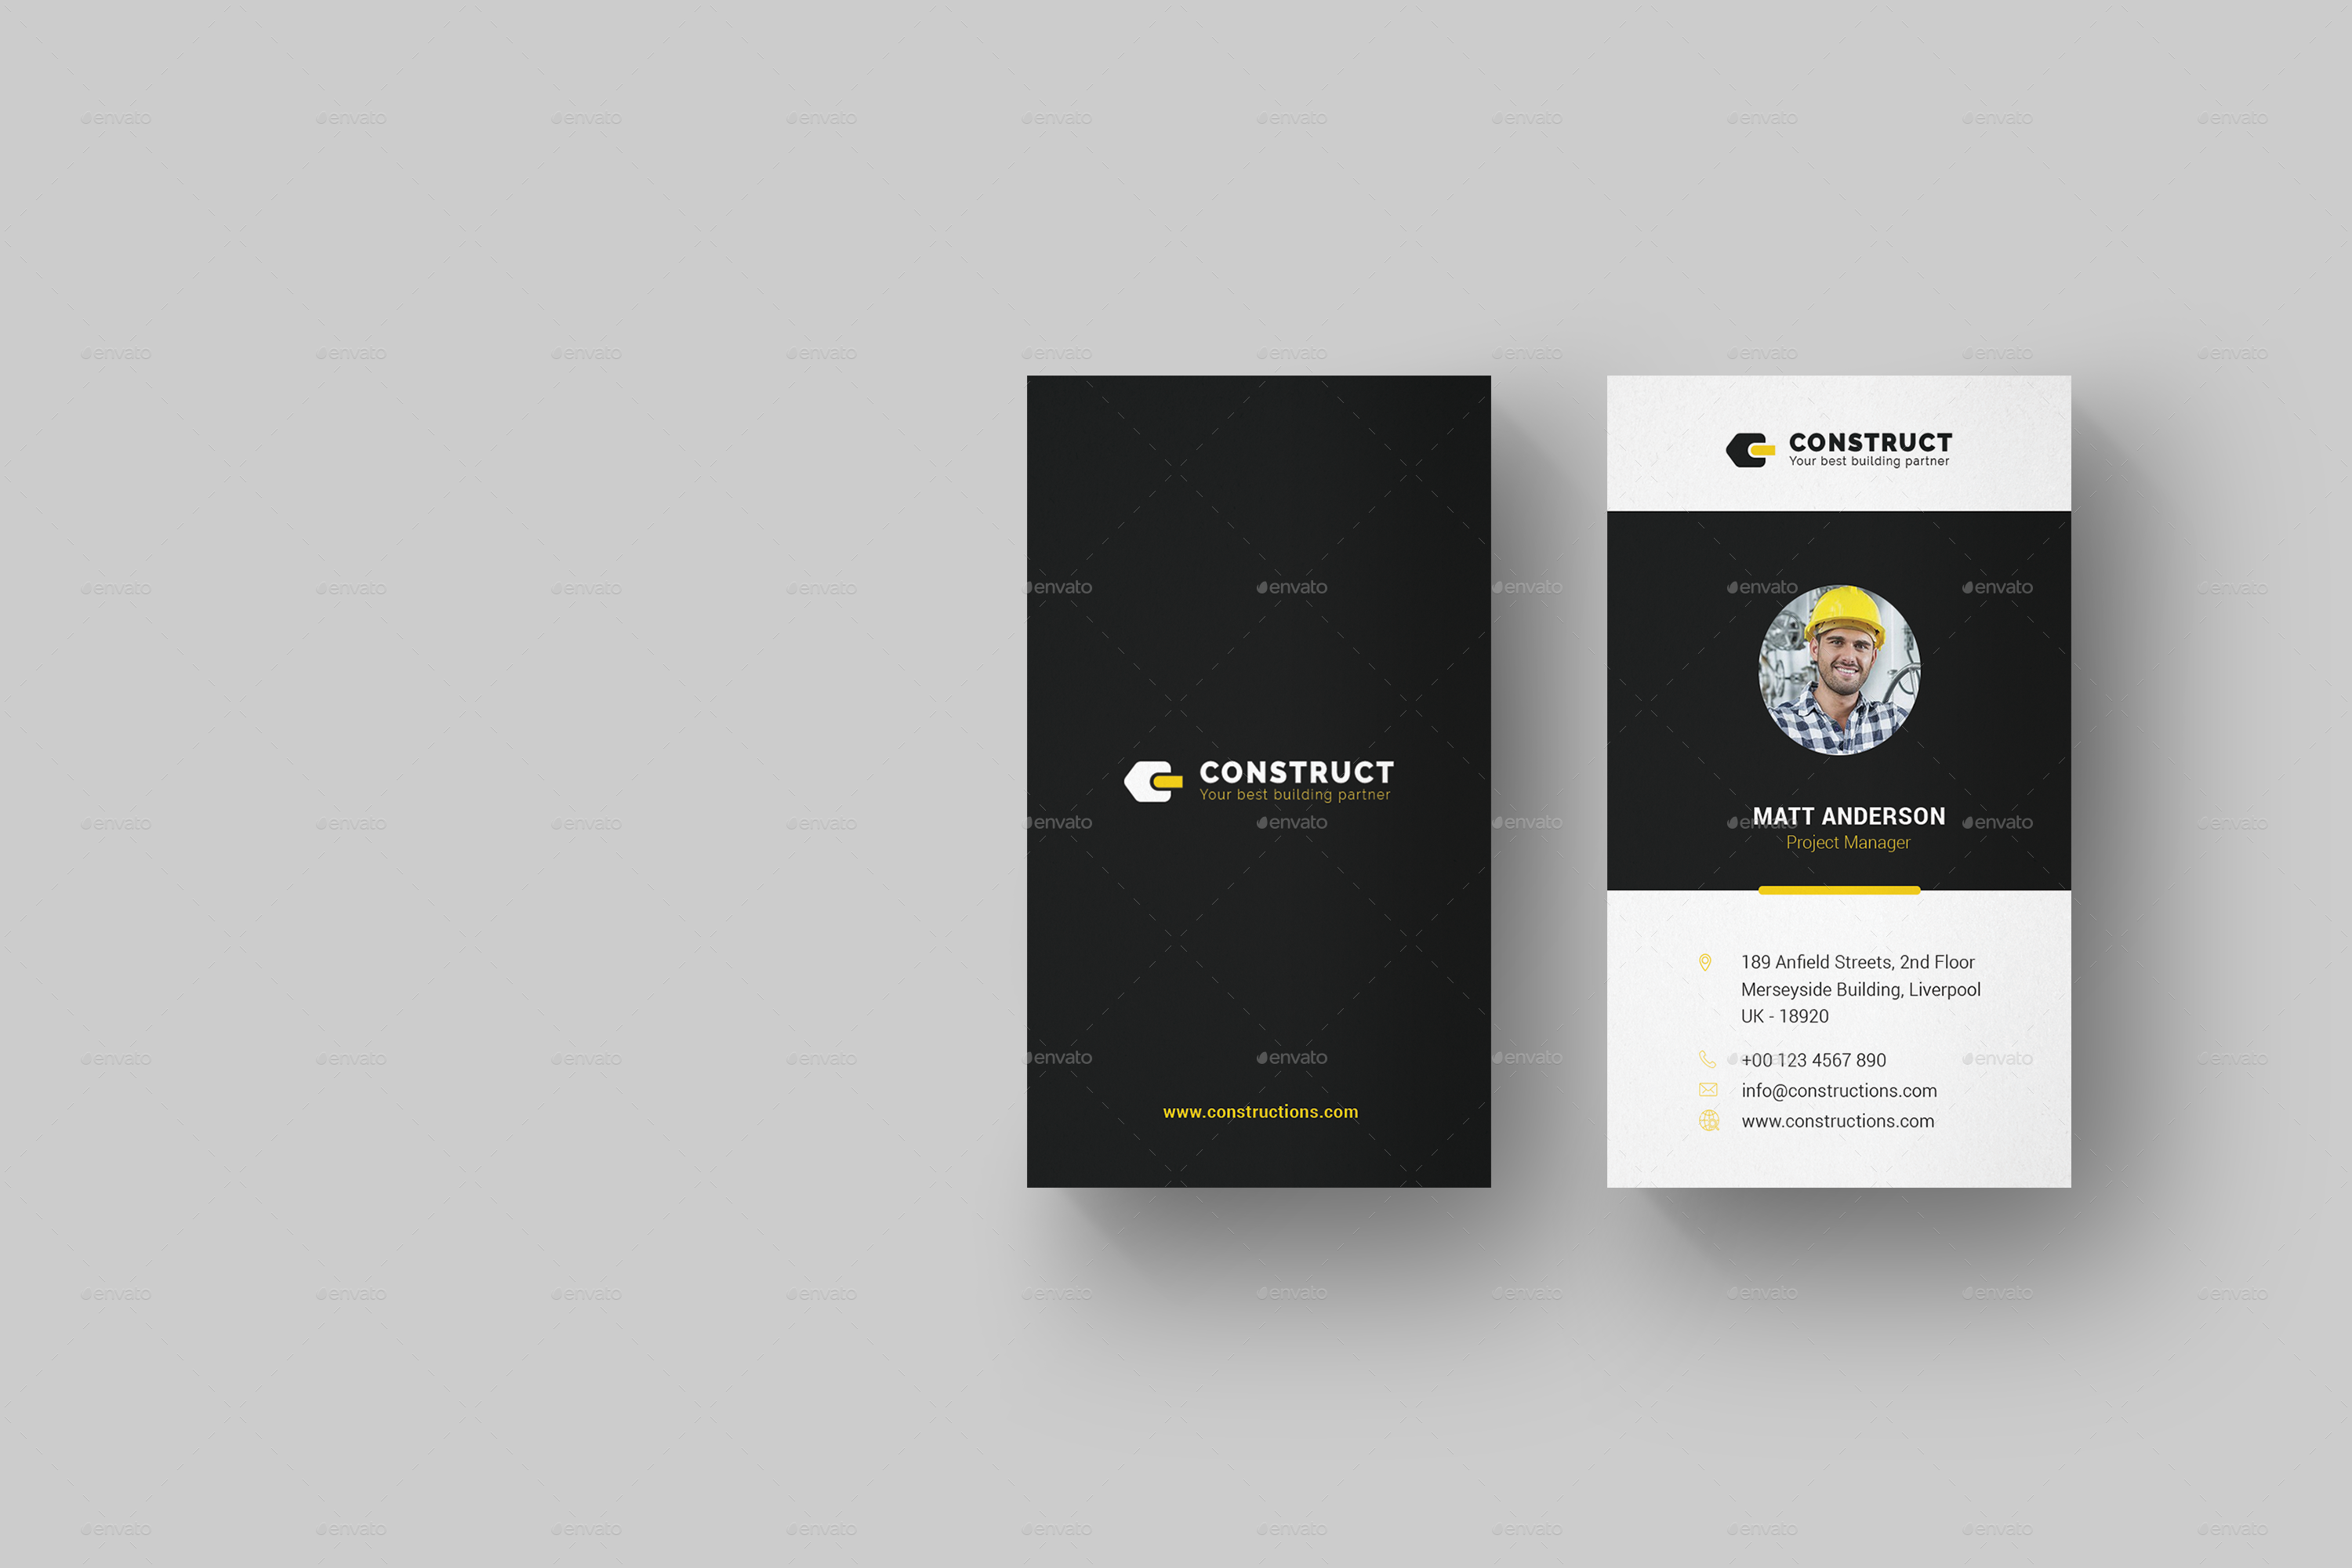 Construct multipurpose business card template by onegraphics previewset01previewconstructverticalbusinesscardg reheart Gallery